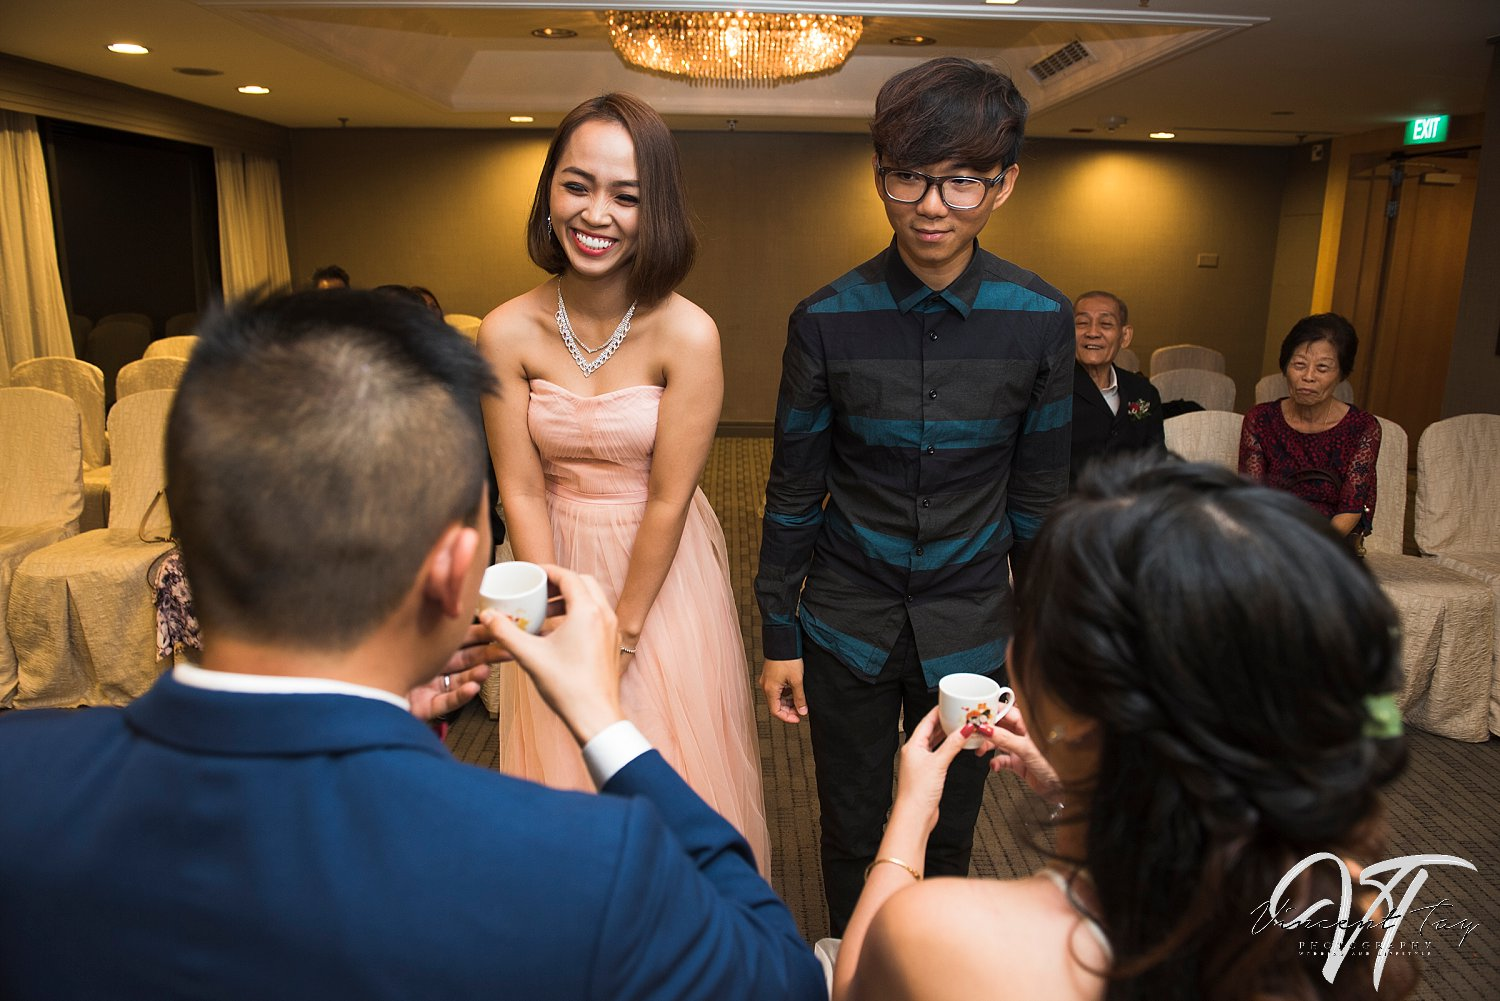 Actual Day Wedding Photography Singapore: Couple offering the tea to the groom's father. A ceremony to show that they are as one family now.